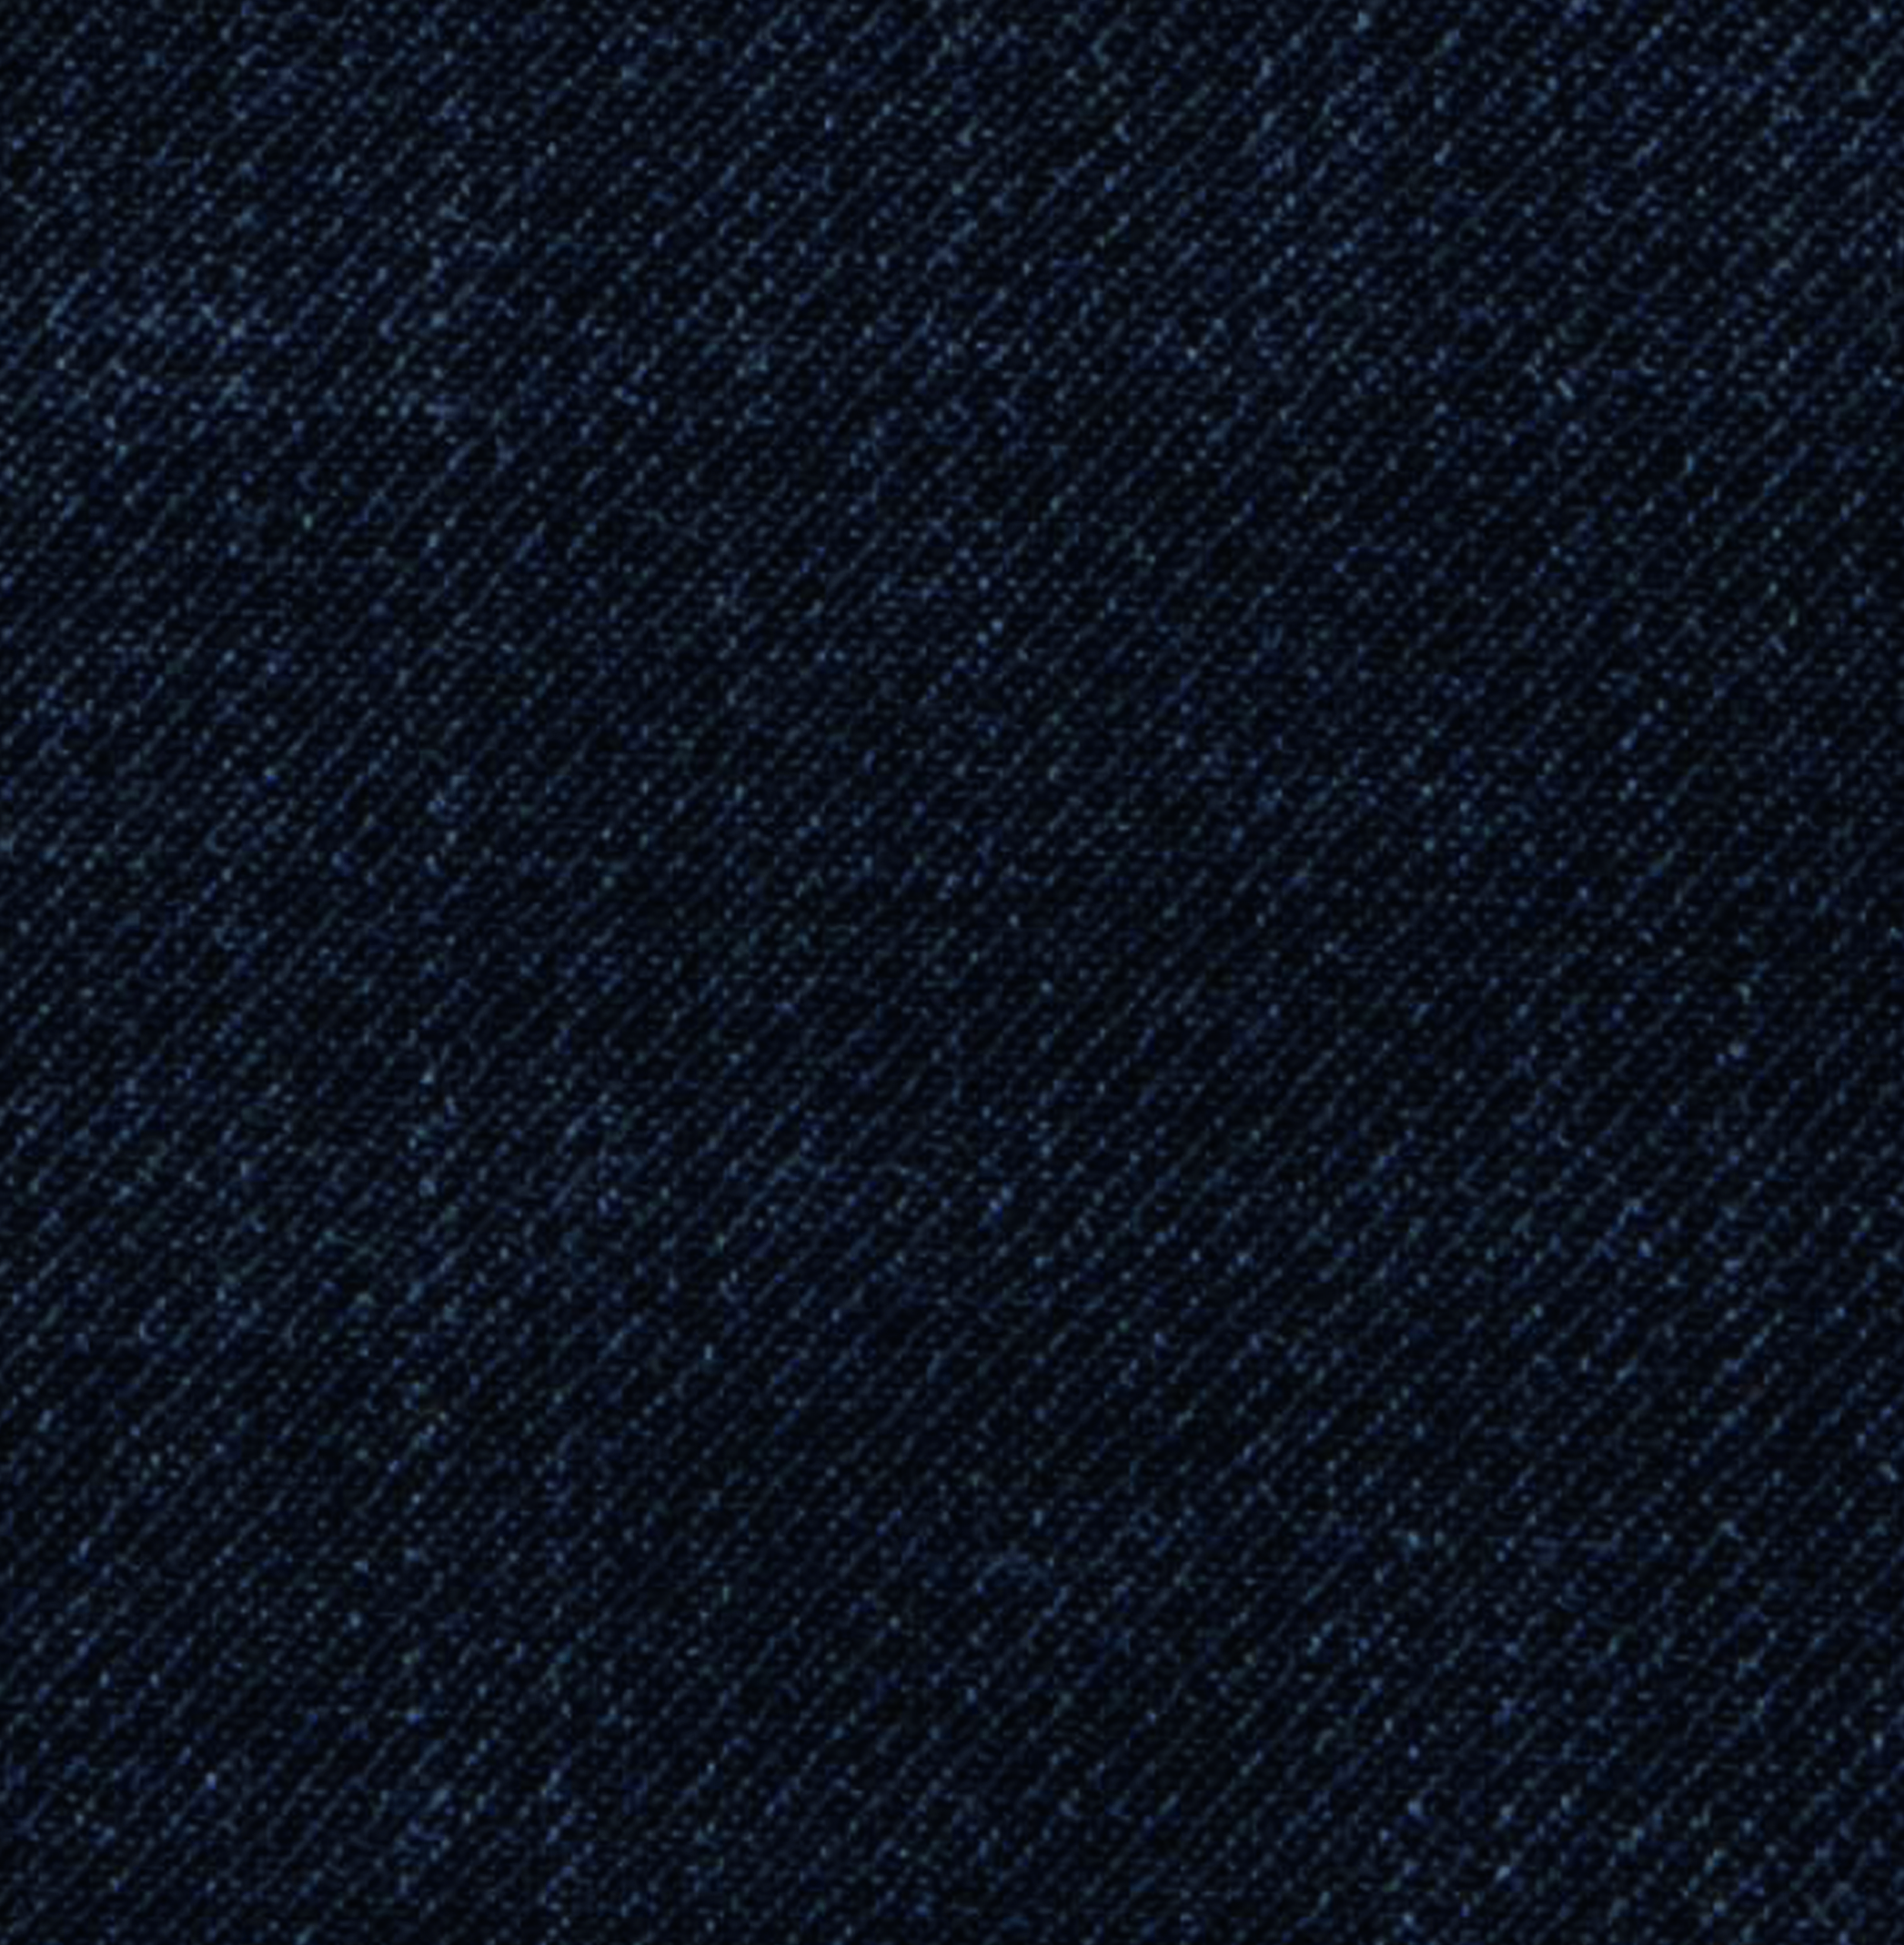 Buy tailor made shirts online - Easy Care Wool Mix - Charcoal no lining